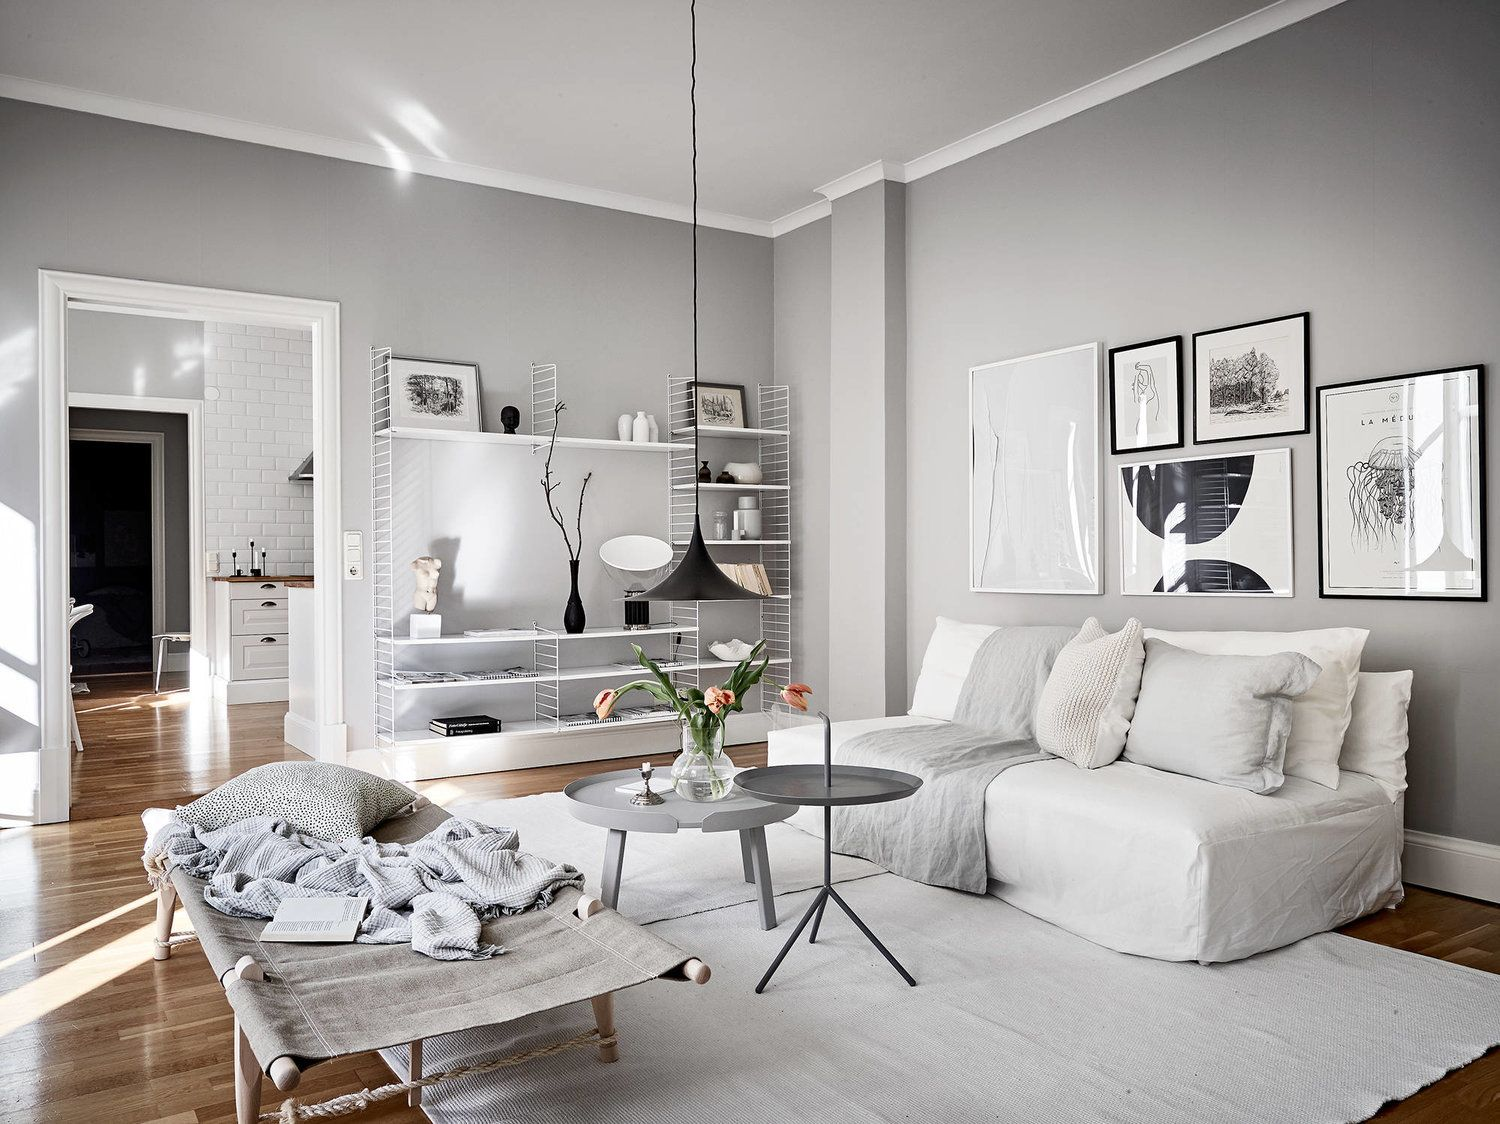 Scandinavian Home Stylish With Light Gray Walls Grey Walls